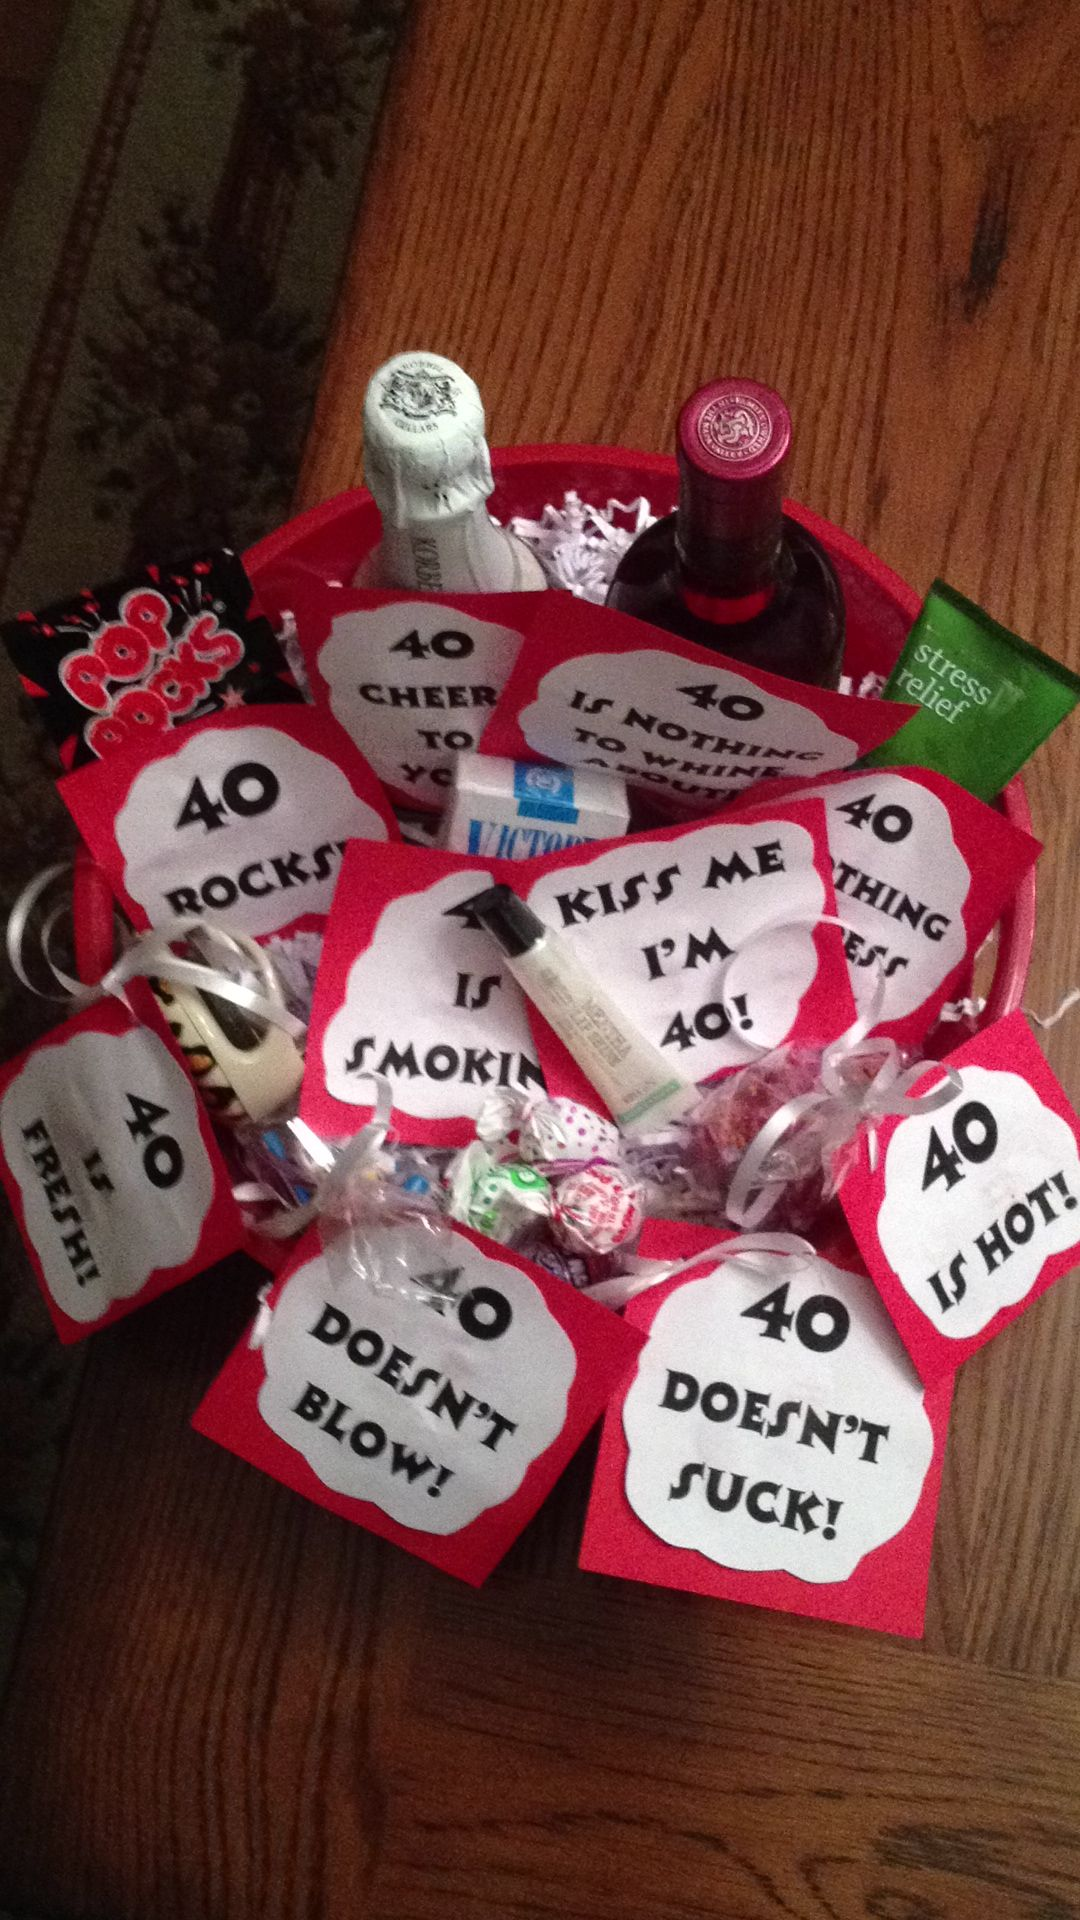 40th Birthday Gift Basket 40 Rocks Pop Rocks 40 Is Fresh Car Clip On Air Freshner 40 40th Birthday Gifts 40th Birthday Decorations Birthday Gag Gifts